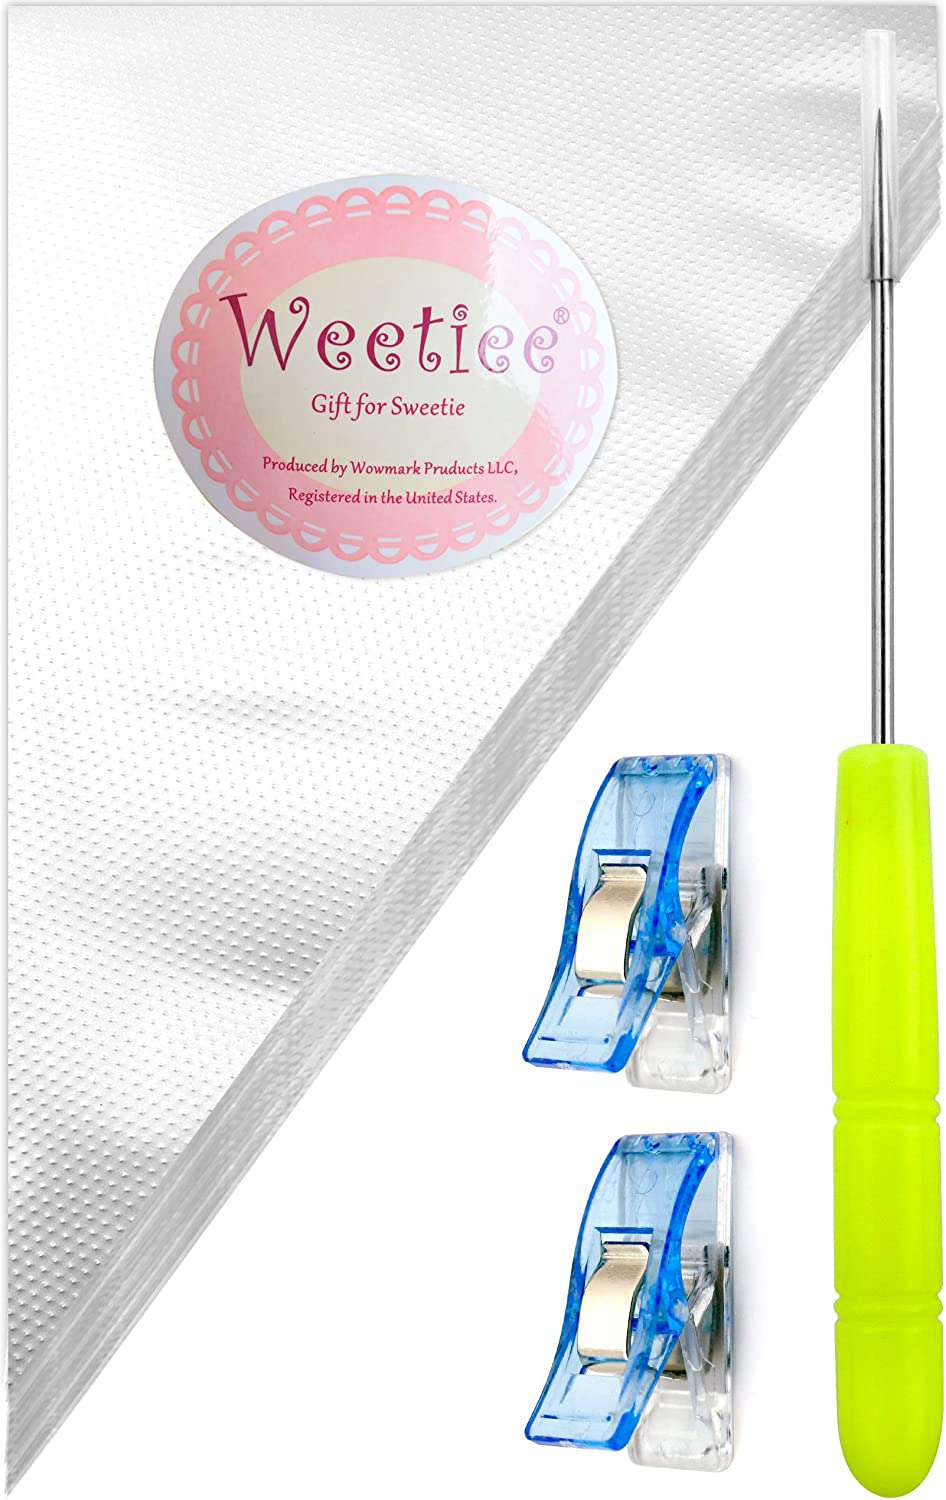 Weetiee 12-Inch Tipless Piping Bags, 100-Count